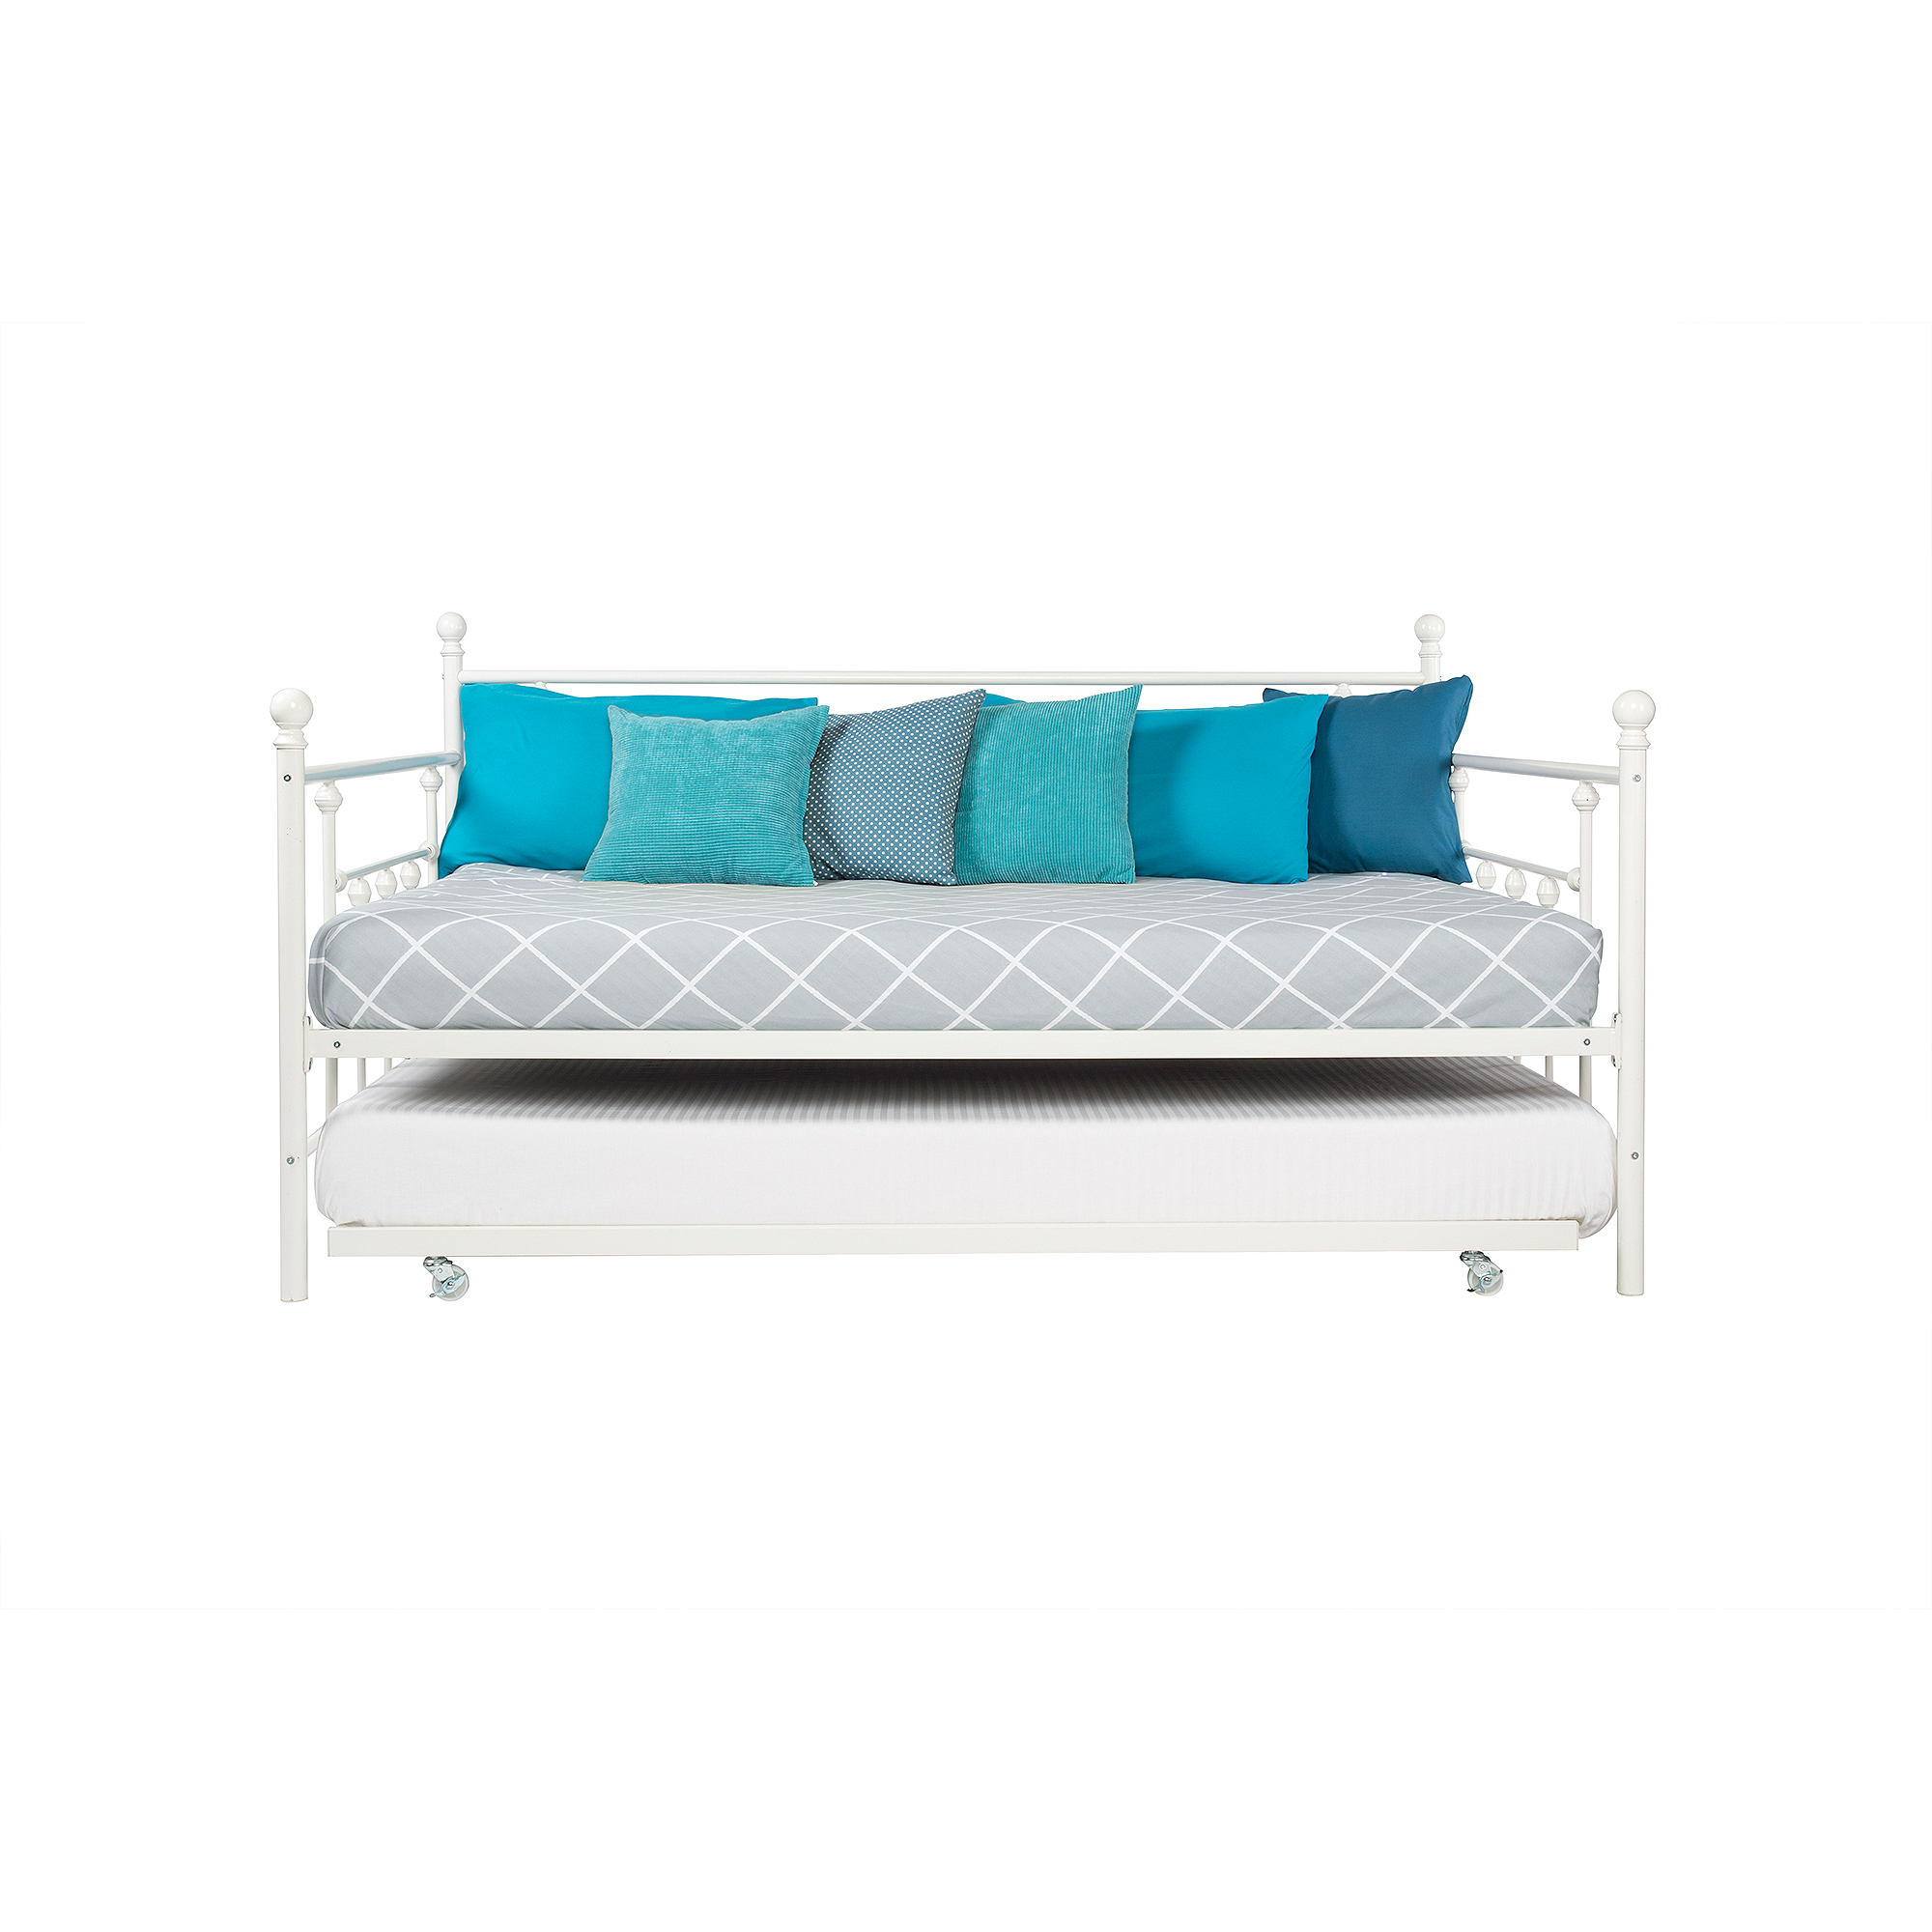 Charming brimnes daybed for small bedroom ideas with ikea brimnes daybed